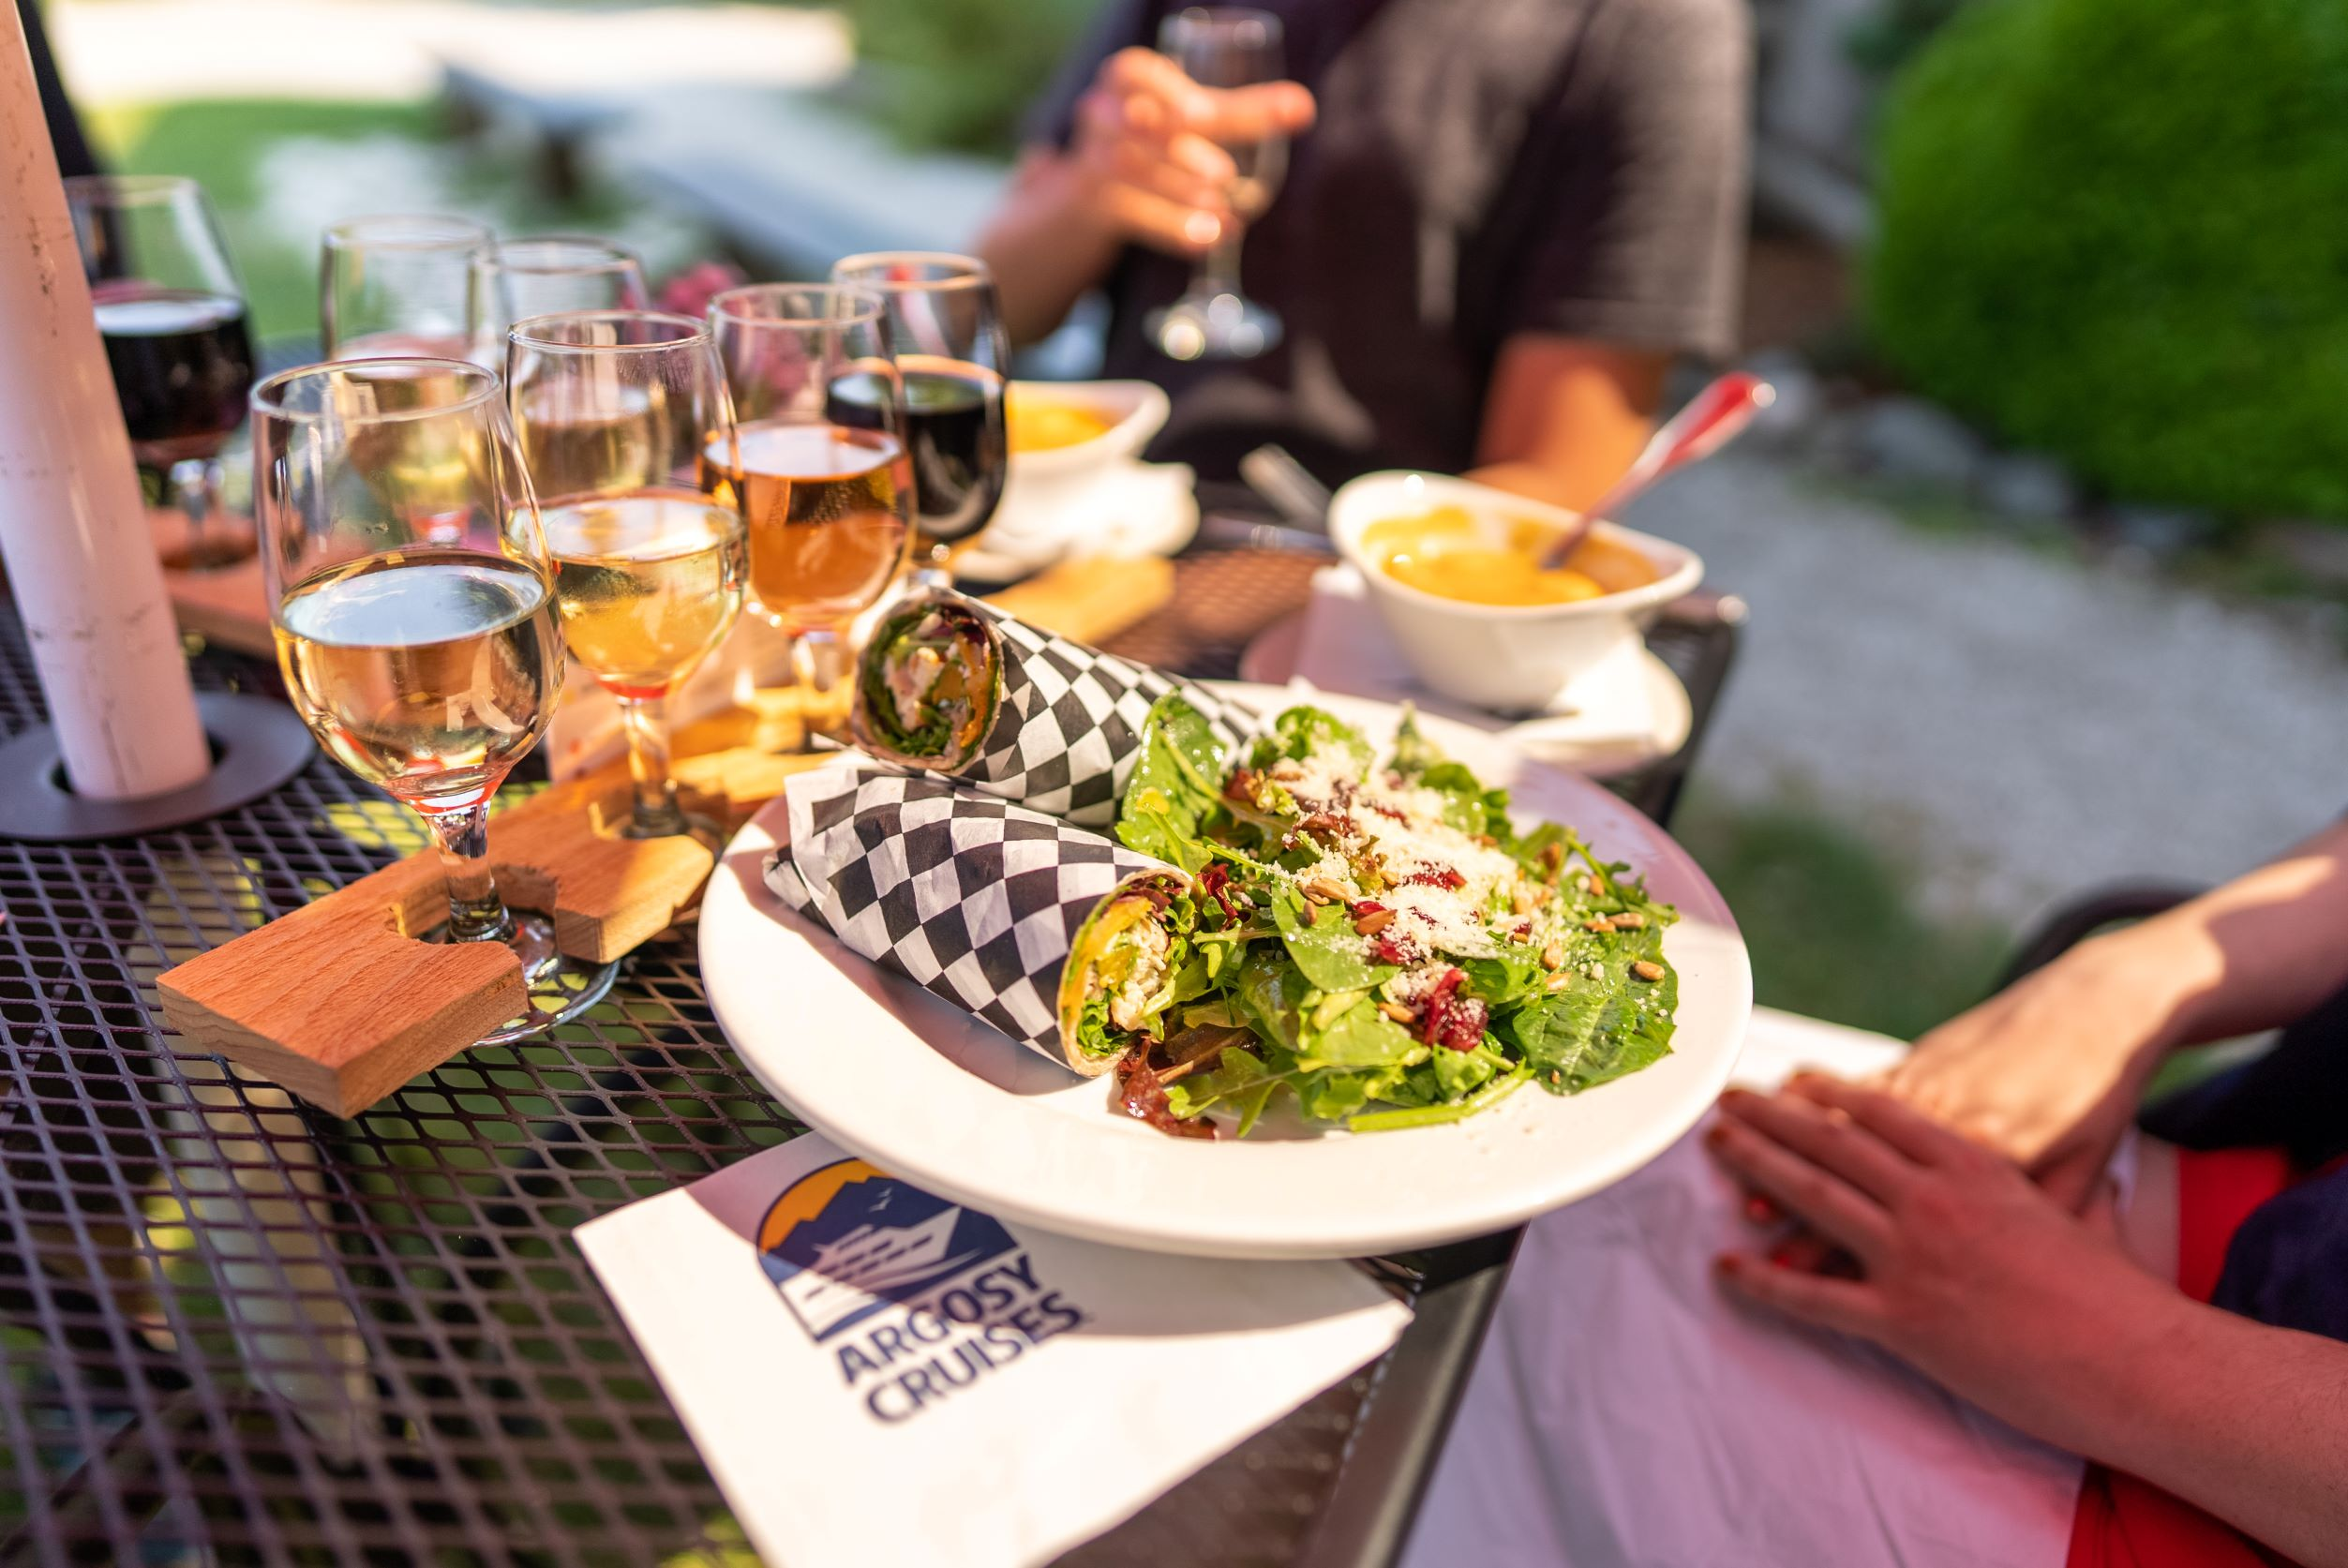 Salad and wrap on plate with wine glasses and man's hand in background